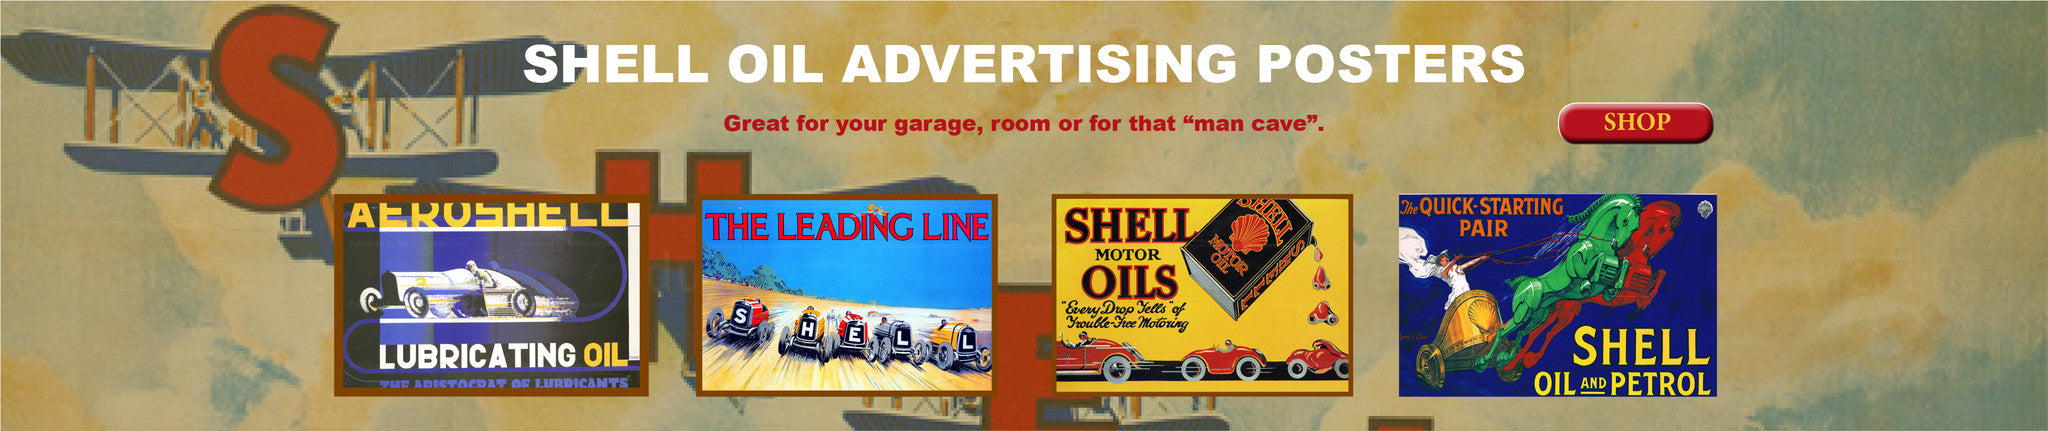 Collect Vintage Shell Oil Advertising Posters